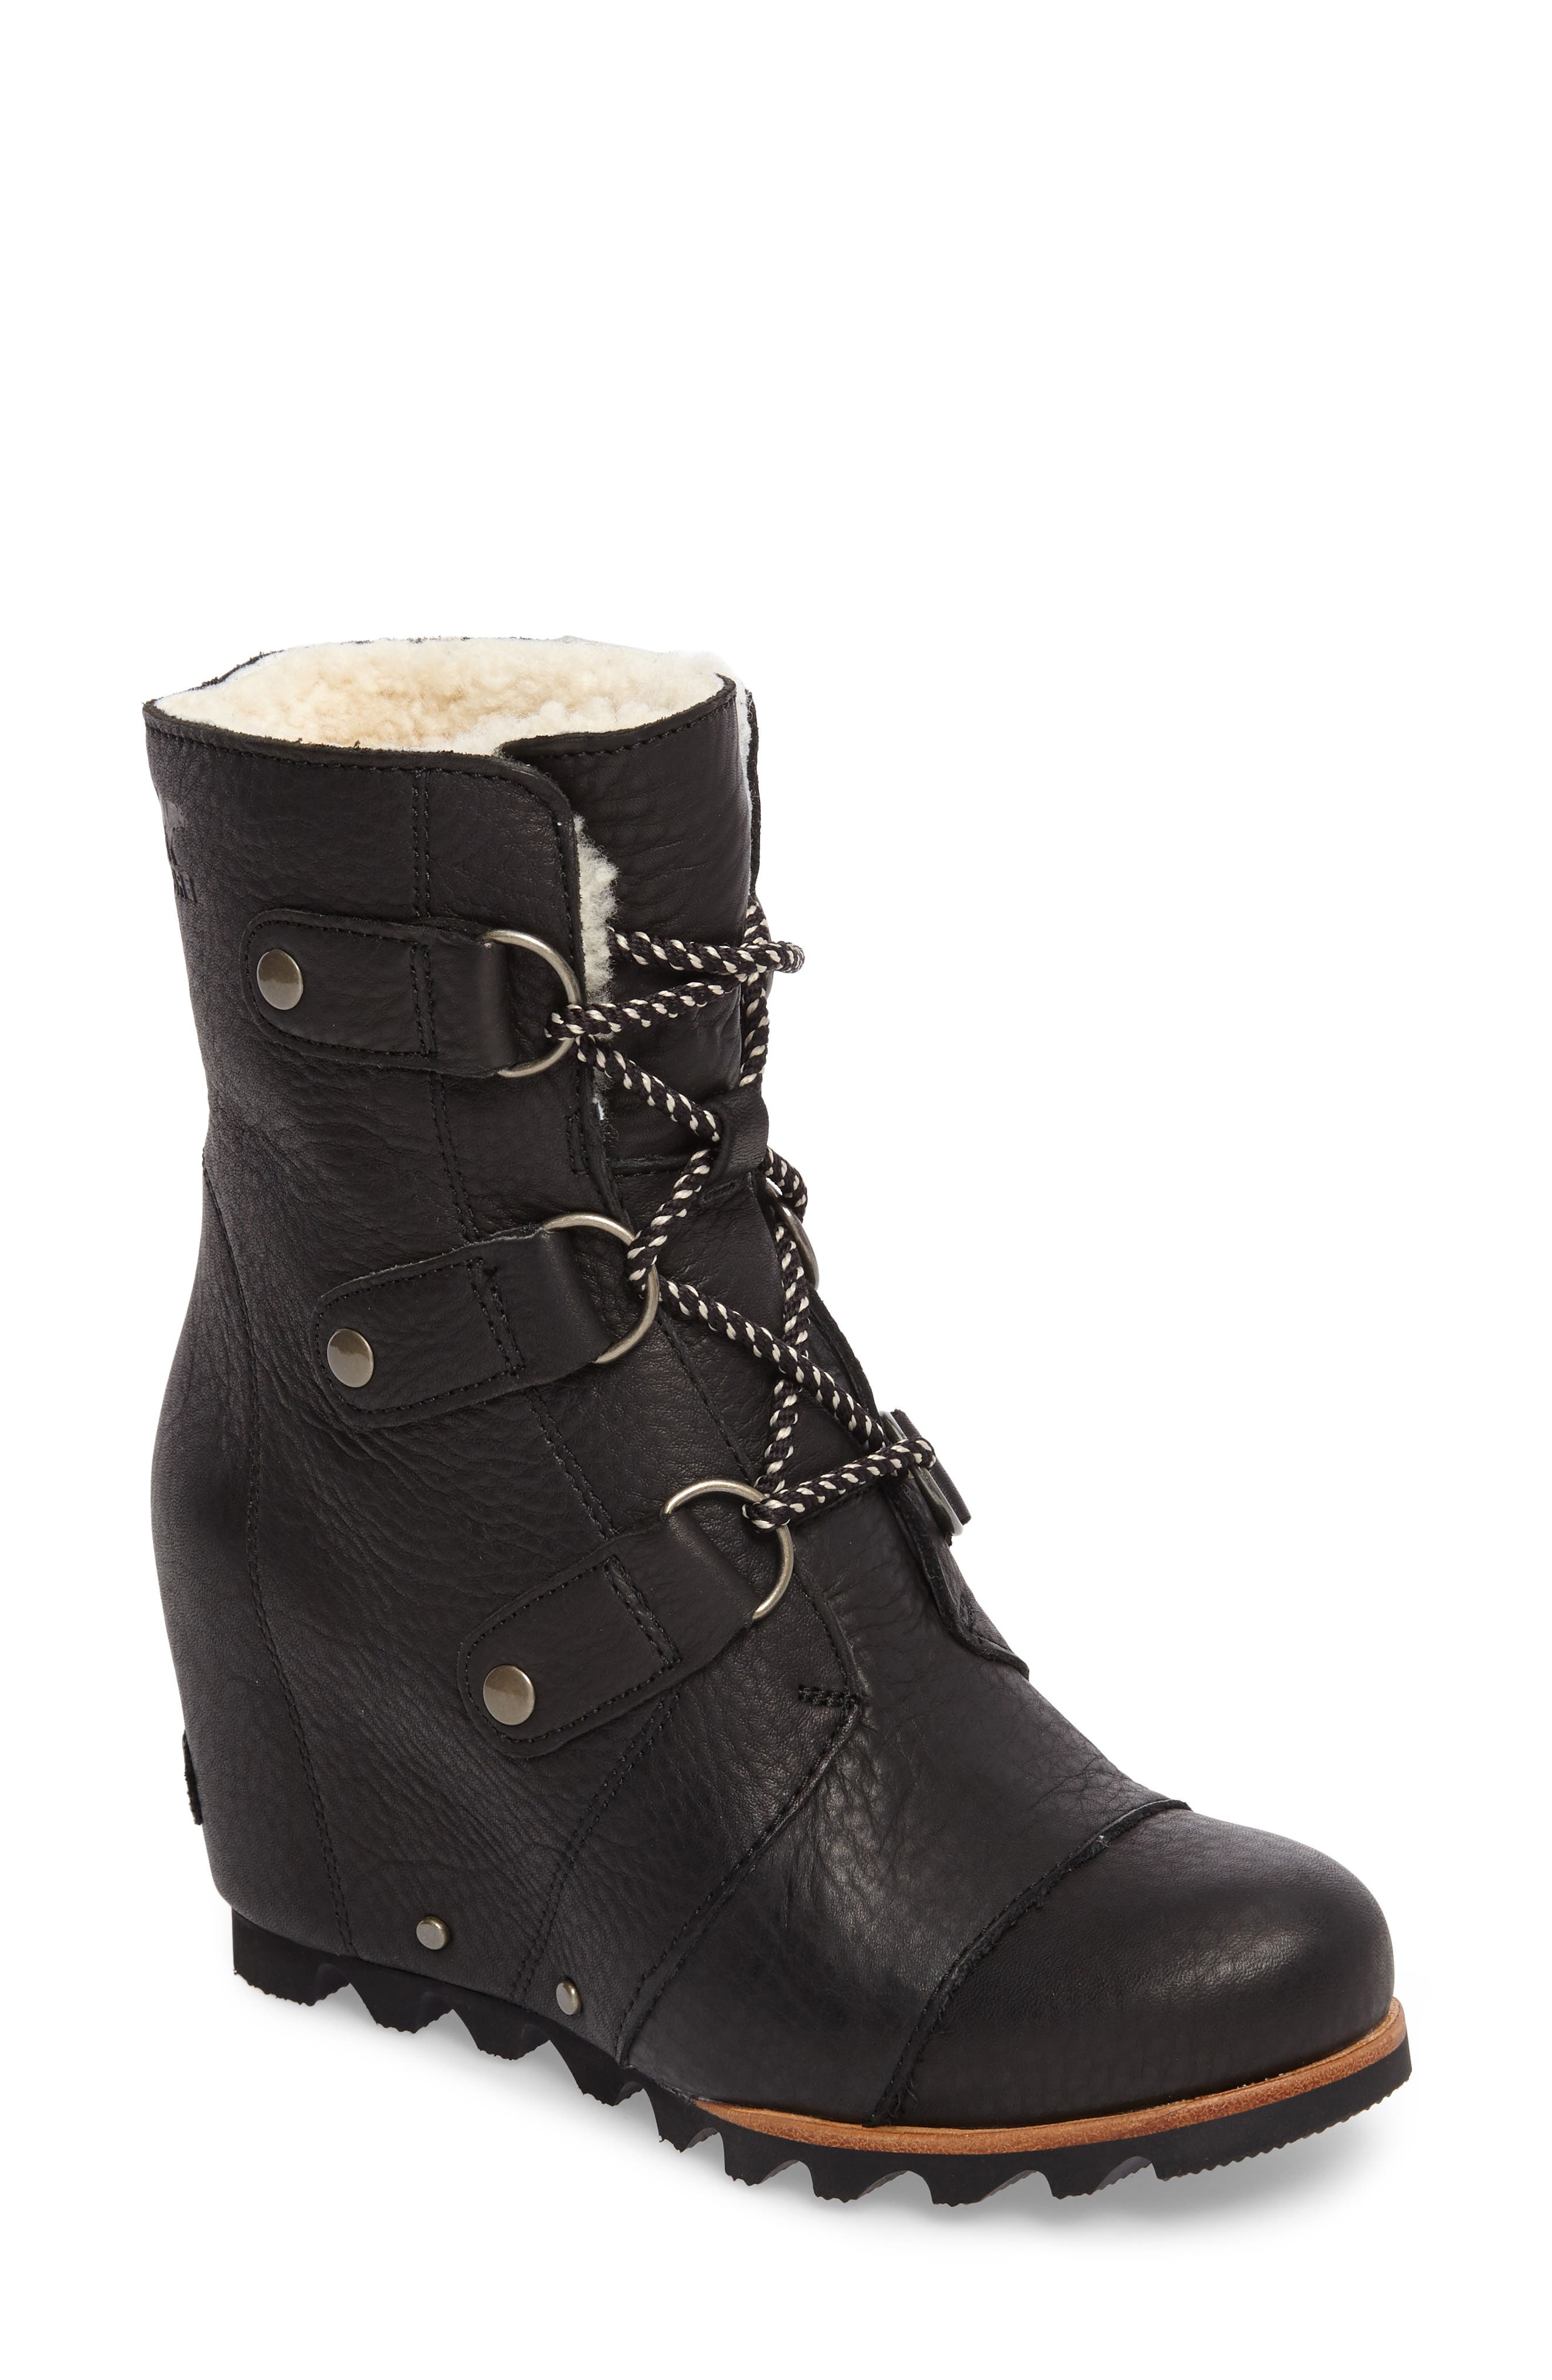 Joan of Arctic Wedge Genuine Shearling Bootie,                             Main thumbnail 1, color,                             Black/ Ancient